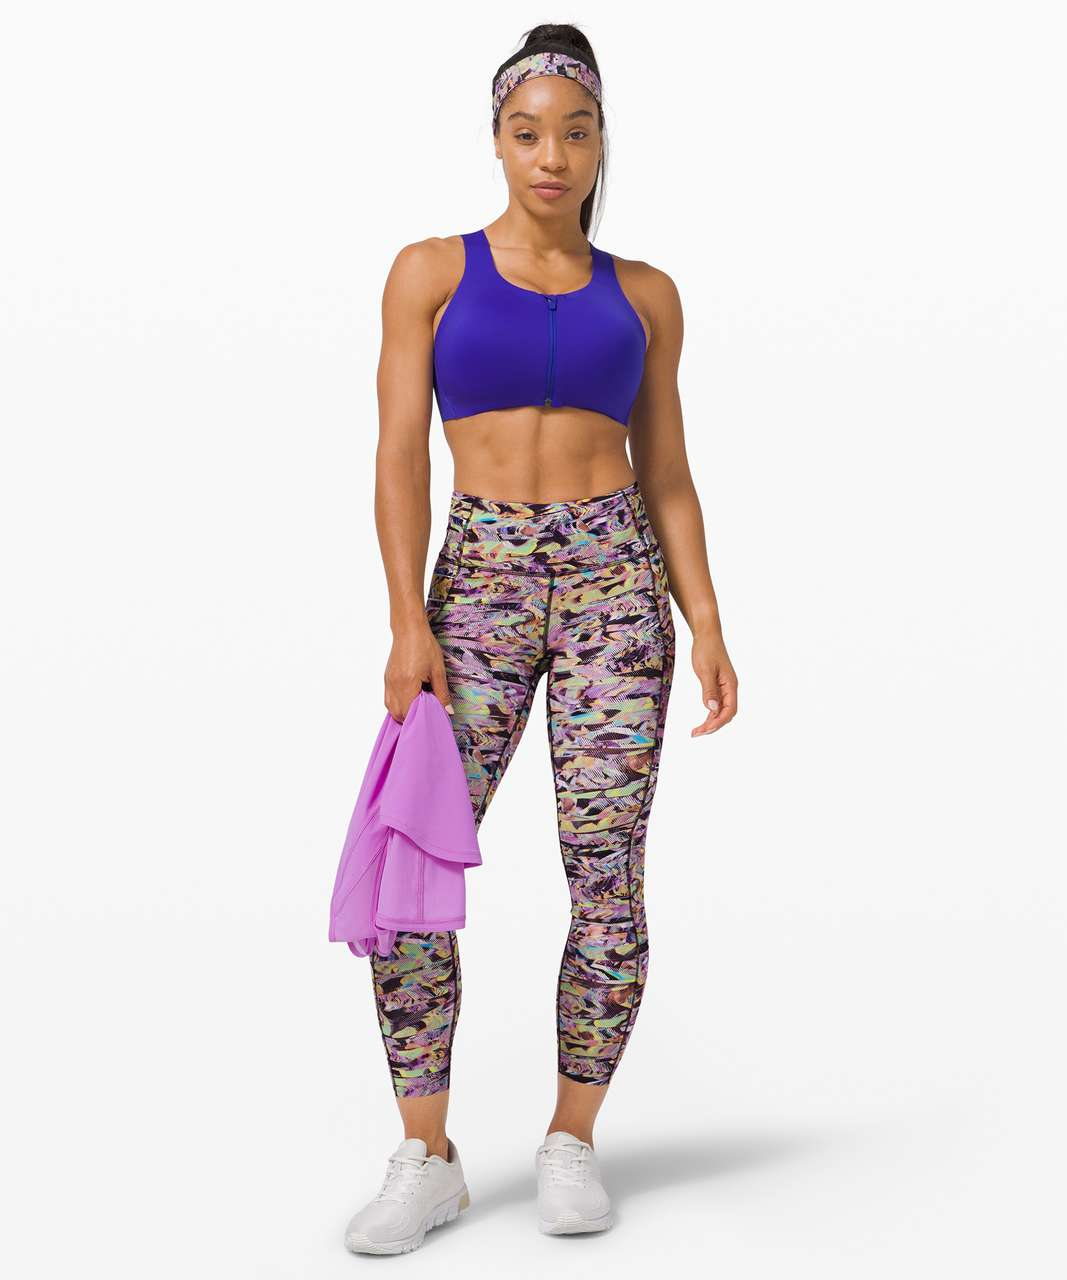 "Lululemon Fast and Free Tight II 25"" *SeaWheeze - Super Sonic Alpine White Purple Multi"